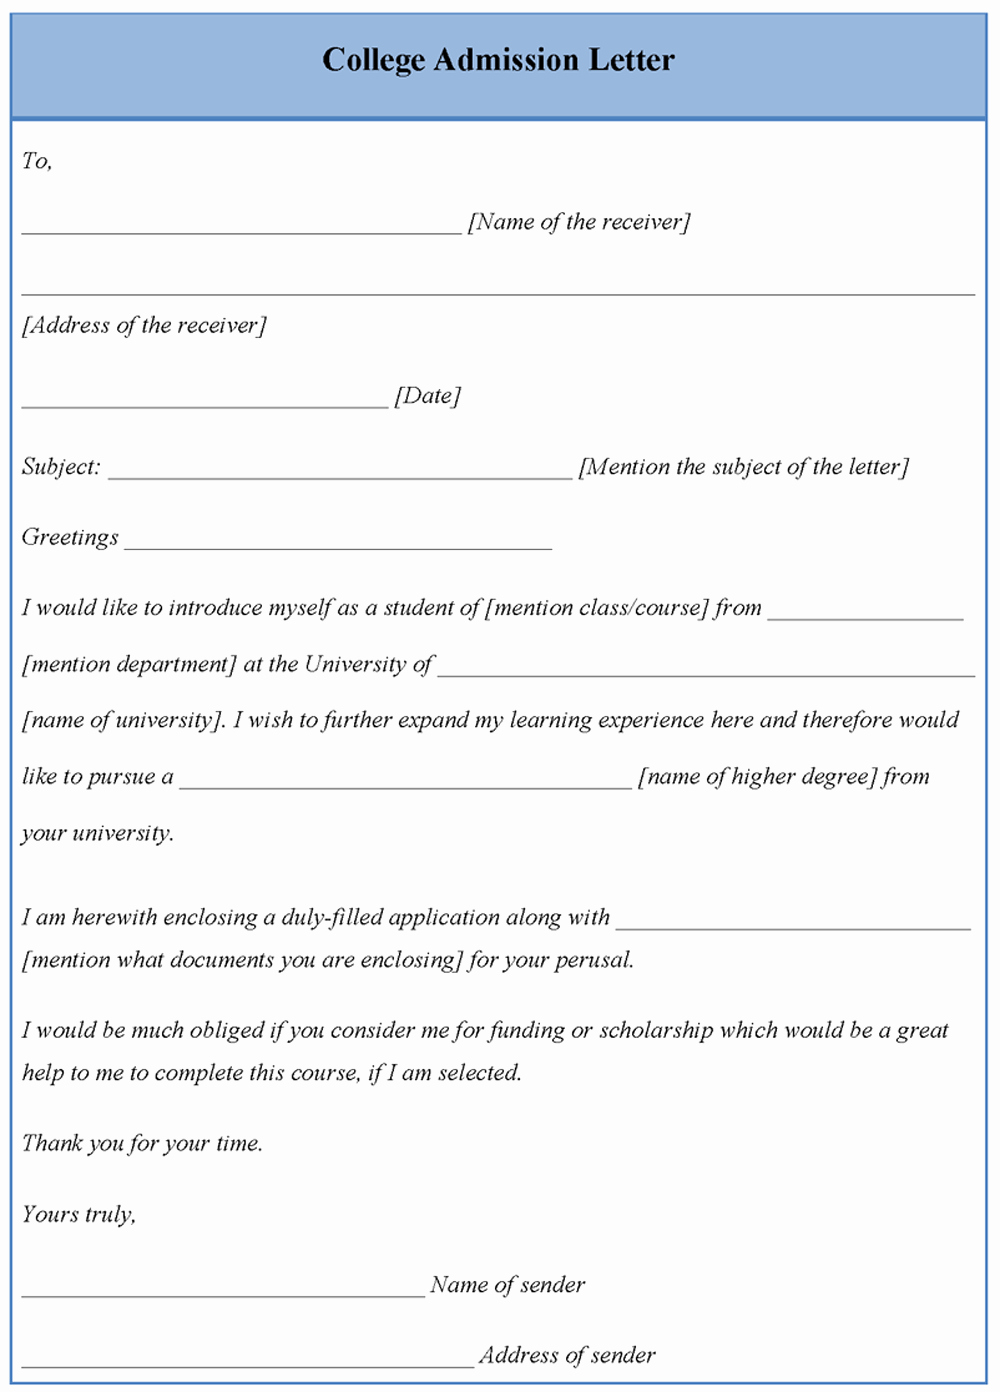 College Acceptance Letter Sample Best Of Letter Template for College Admission Example Of College